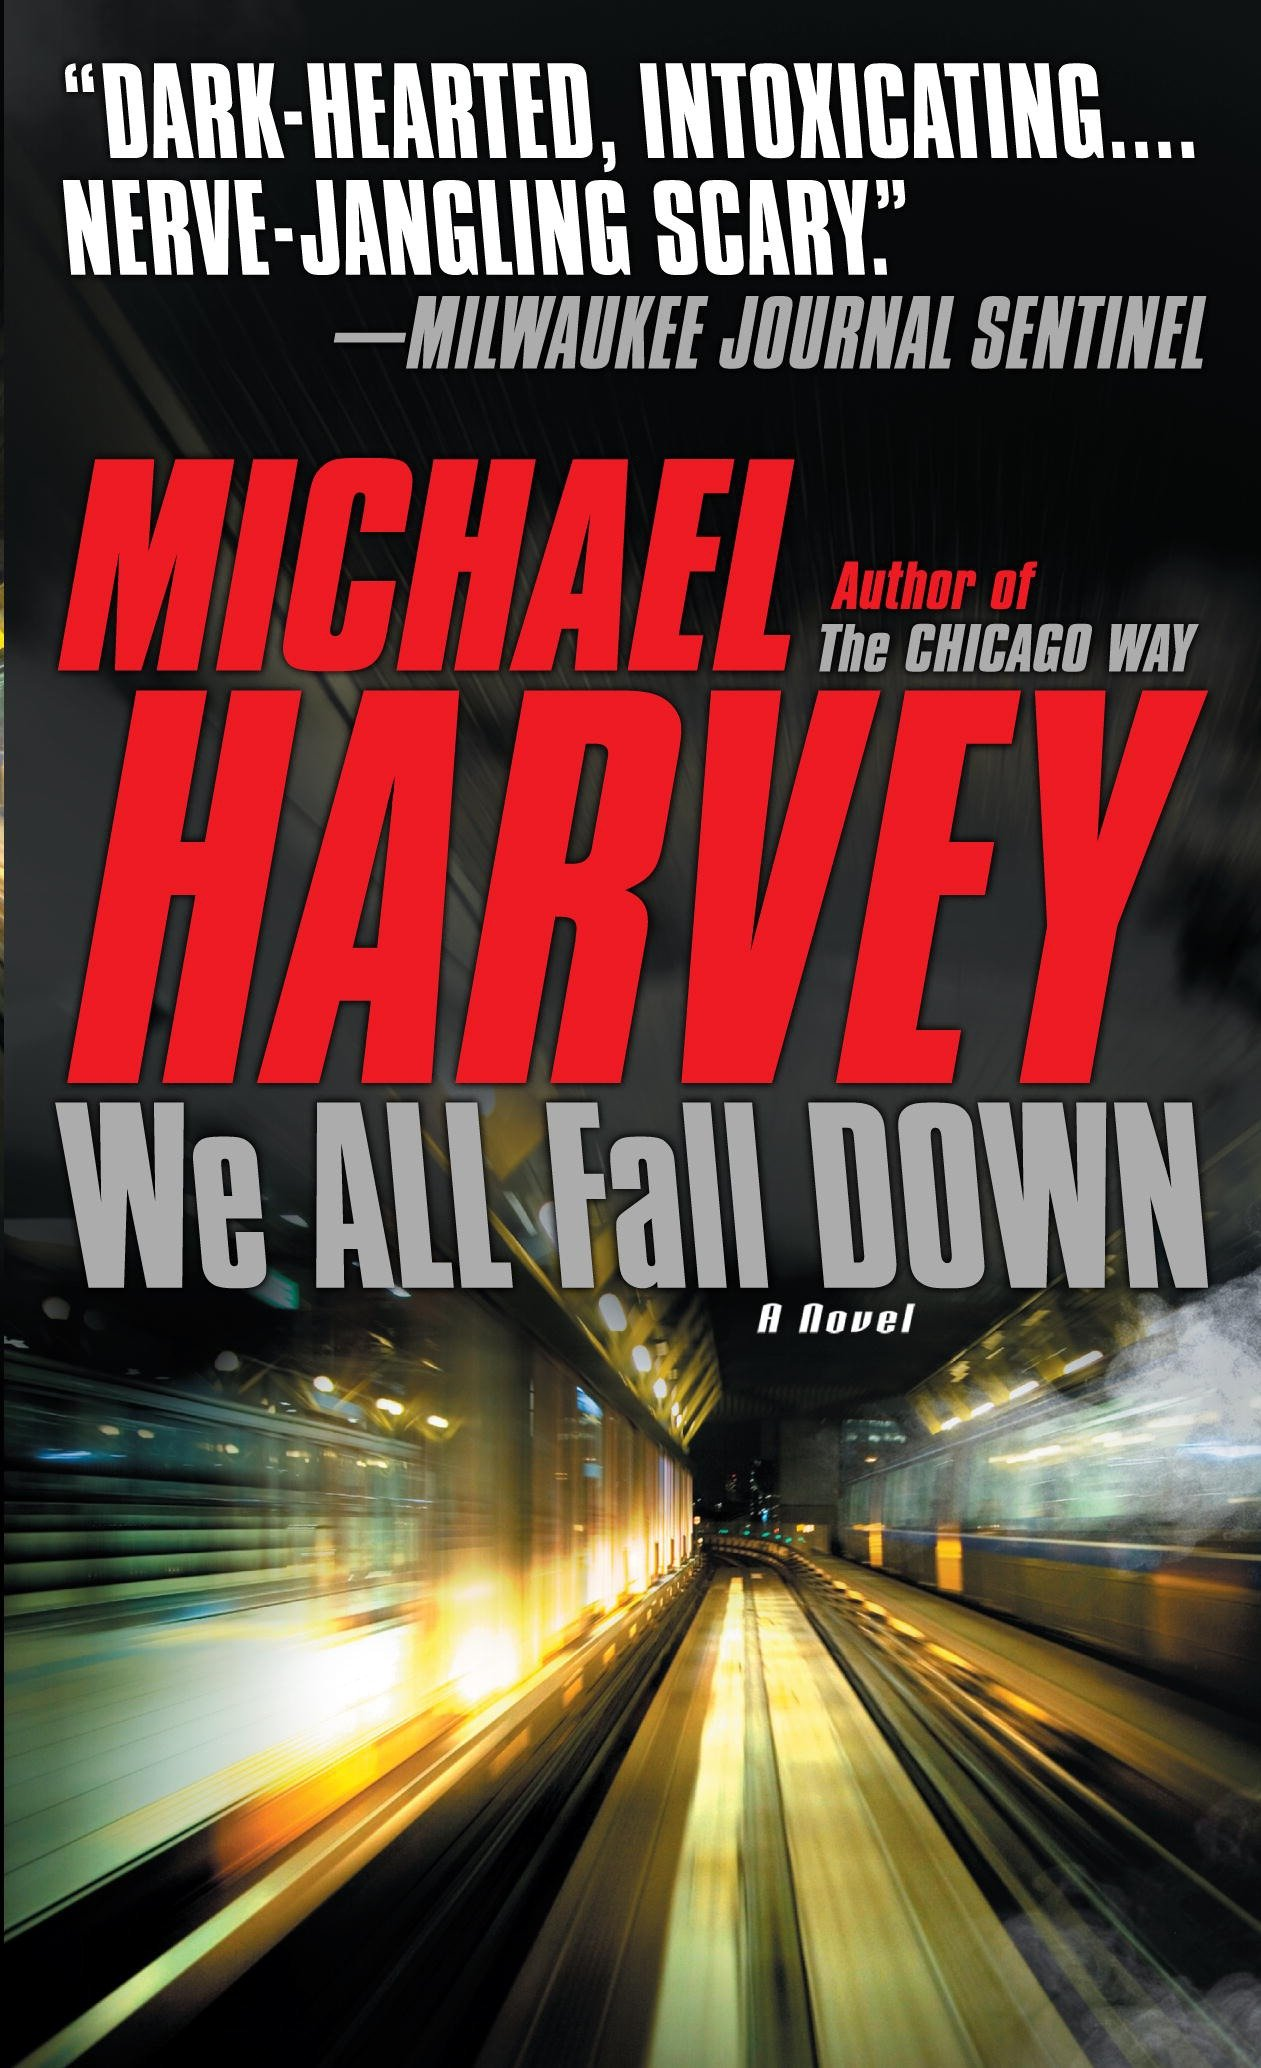 We all fall down cover image